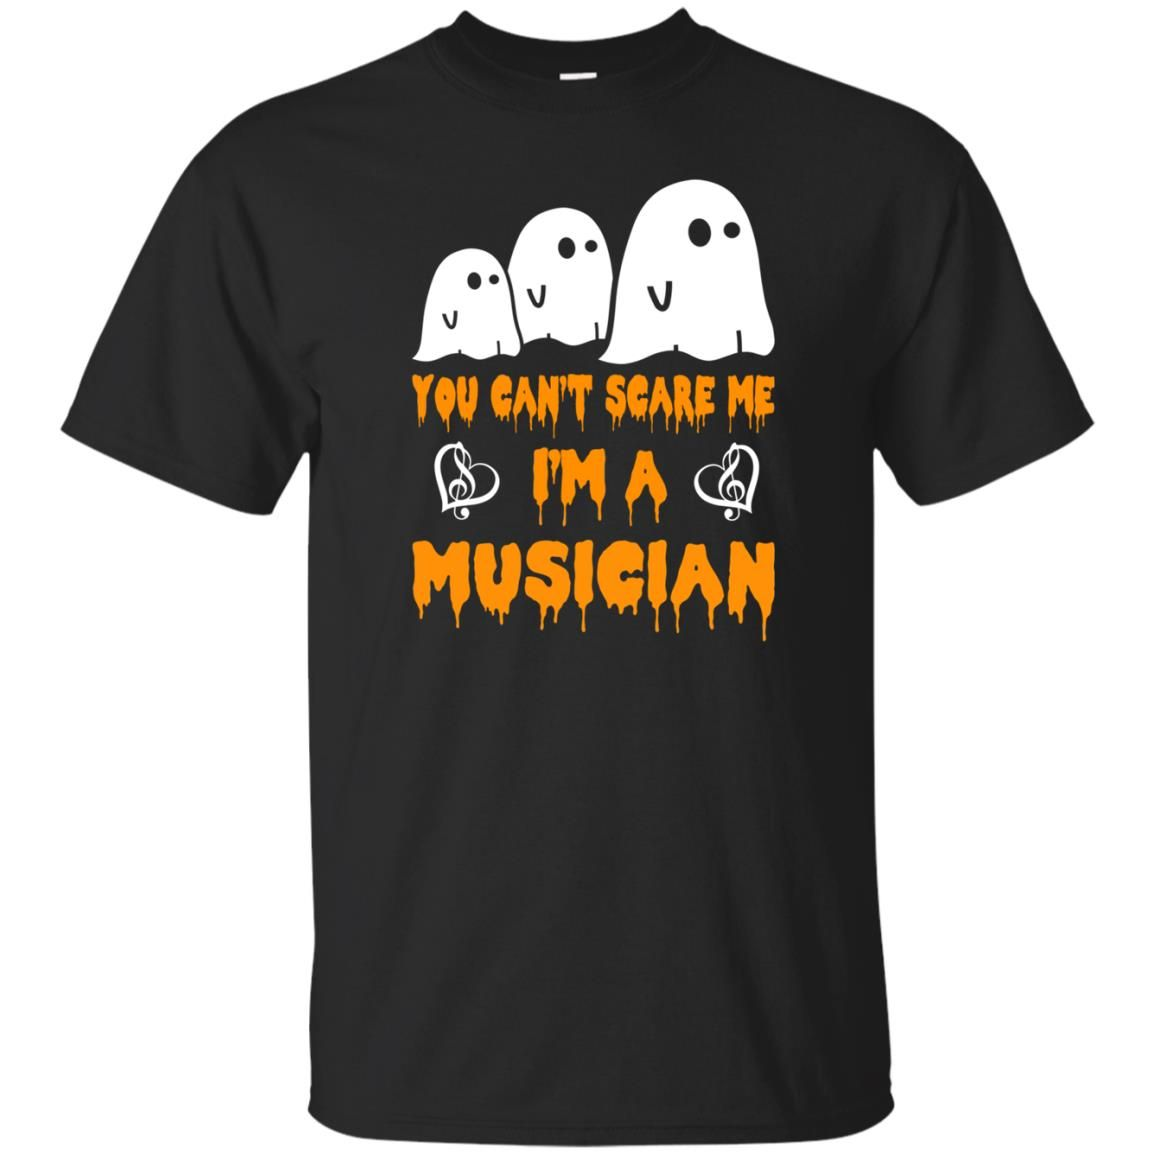 image 384 - You can't scare me I'm a Musician shirt, hoodie, tank